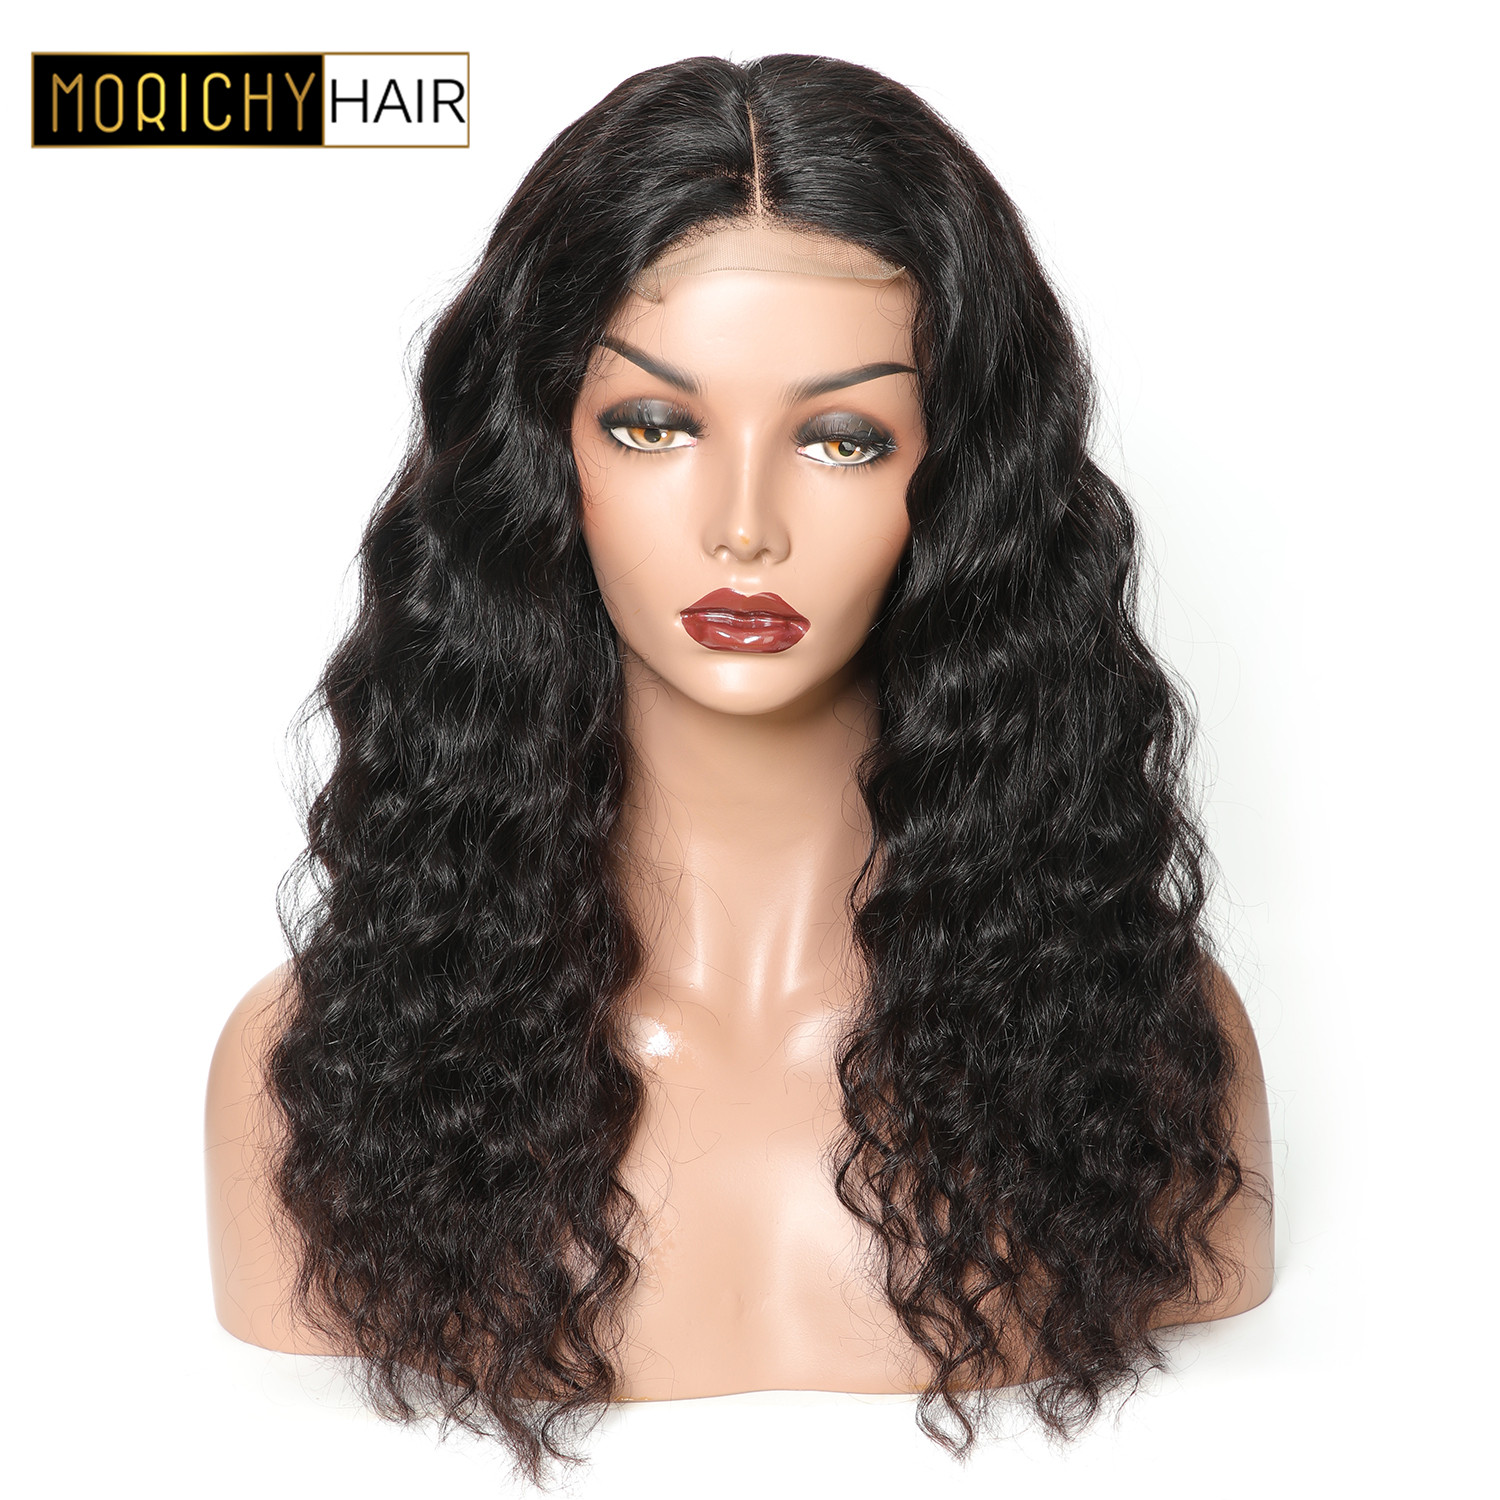 Morichy Hair 4x4 Brazilian Loose Wave Wigs Lace Closure Human Hair Wig 150 Density Middle Part Non Remy Hair Closure Wig